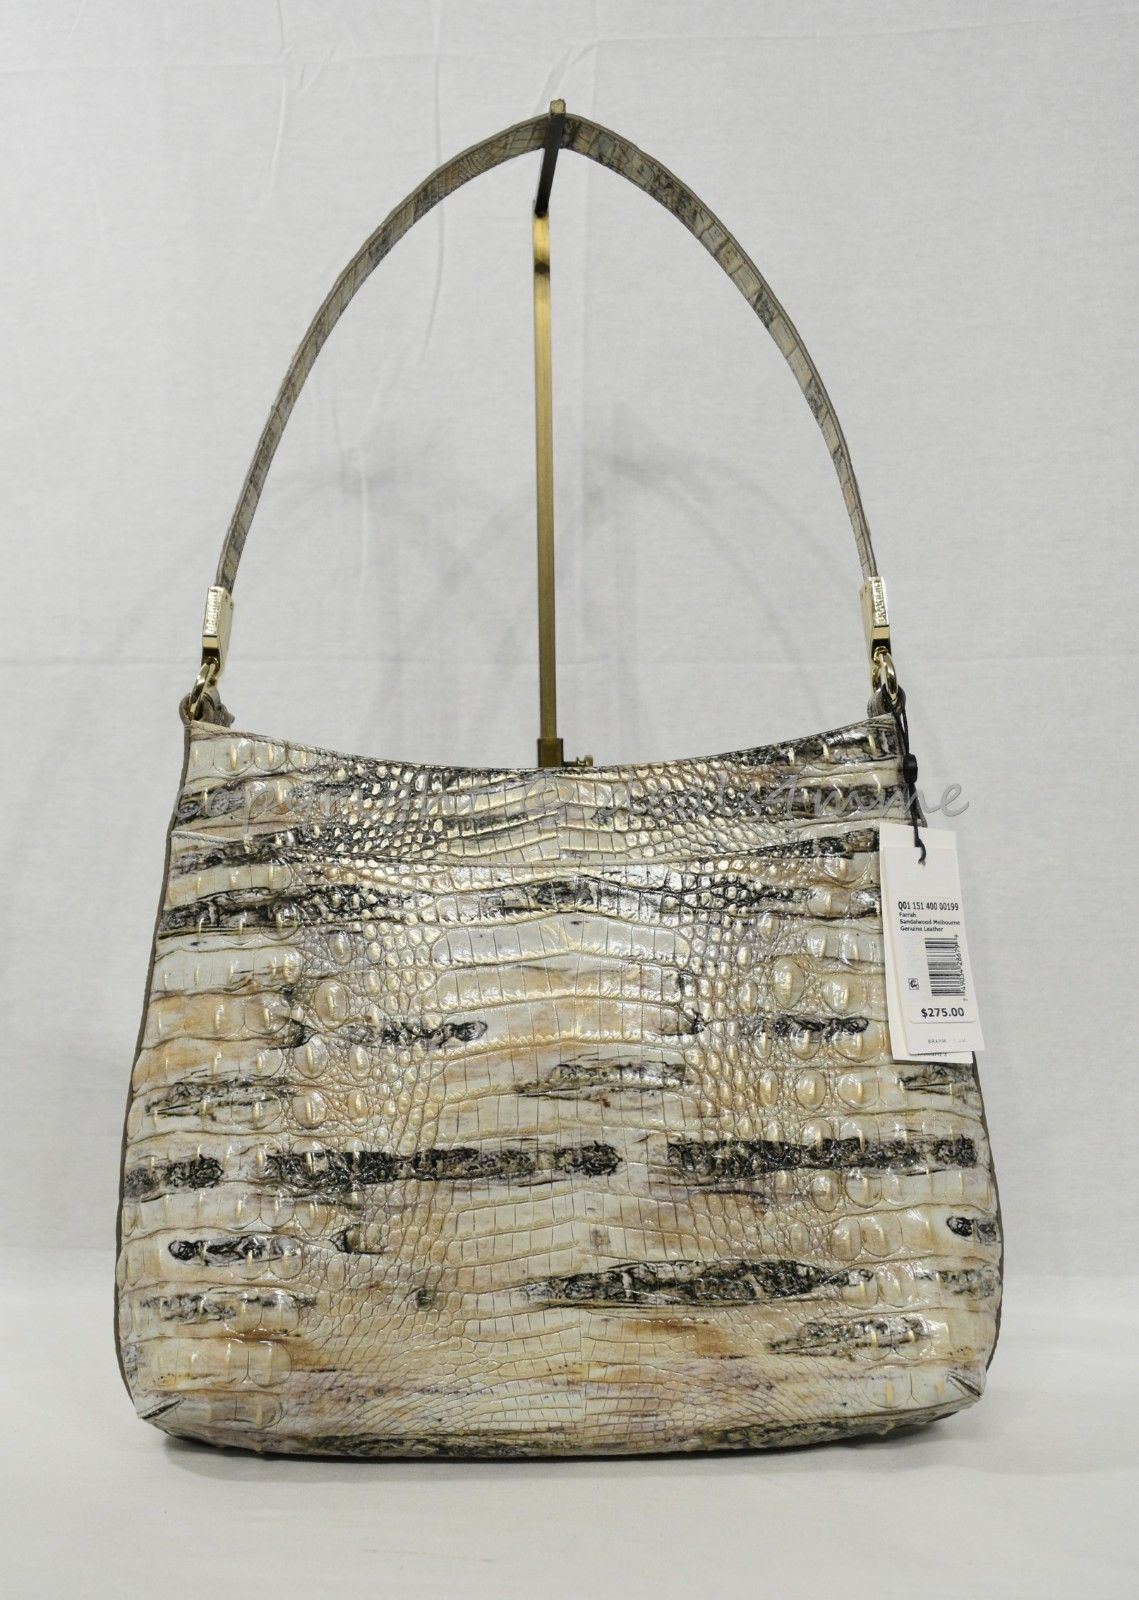 NWT Brahmin Farrah Leather Tote / Shoulder Bag in Sandalwood Melbourne image 12